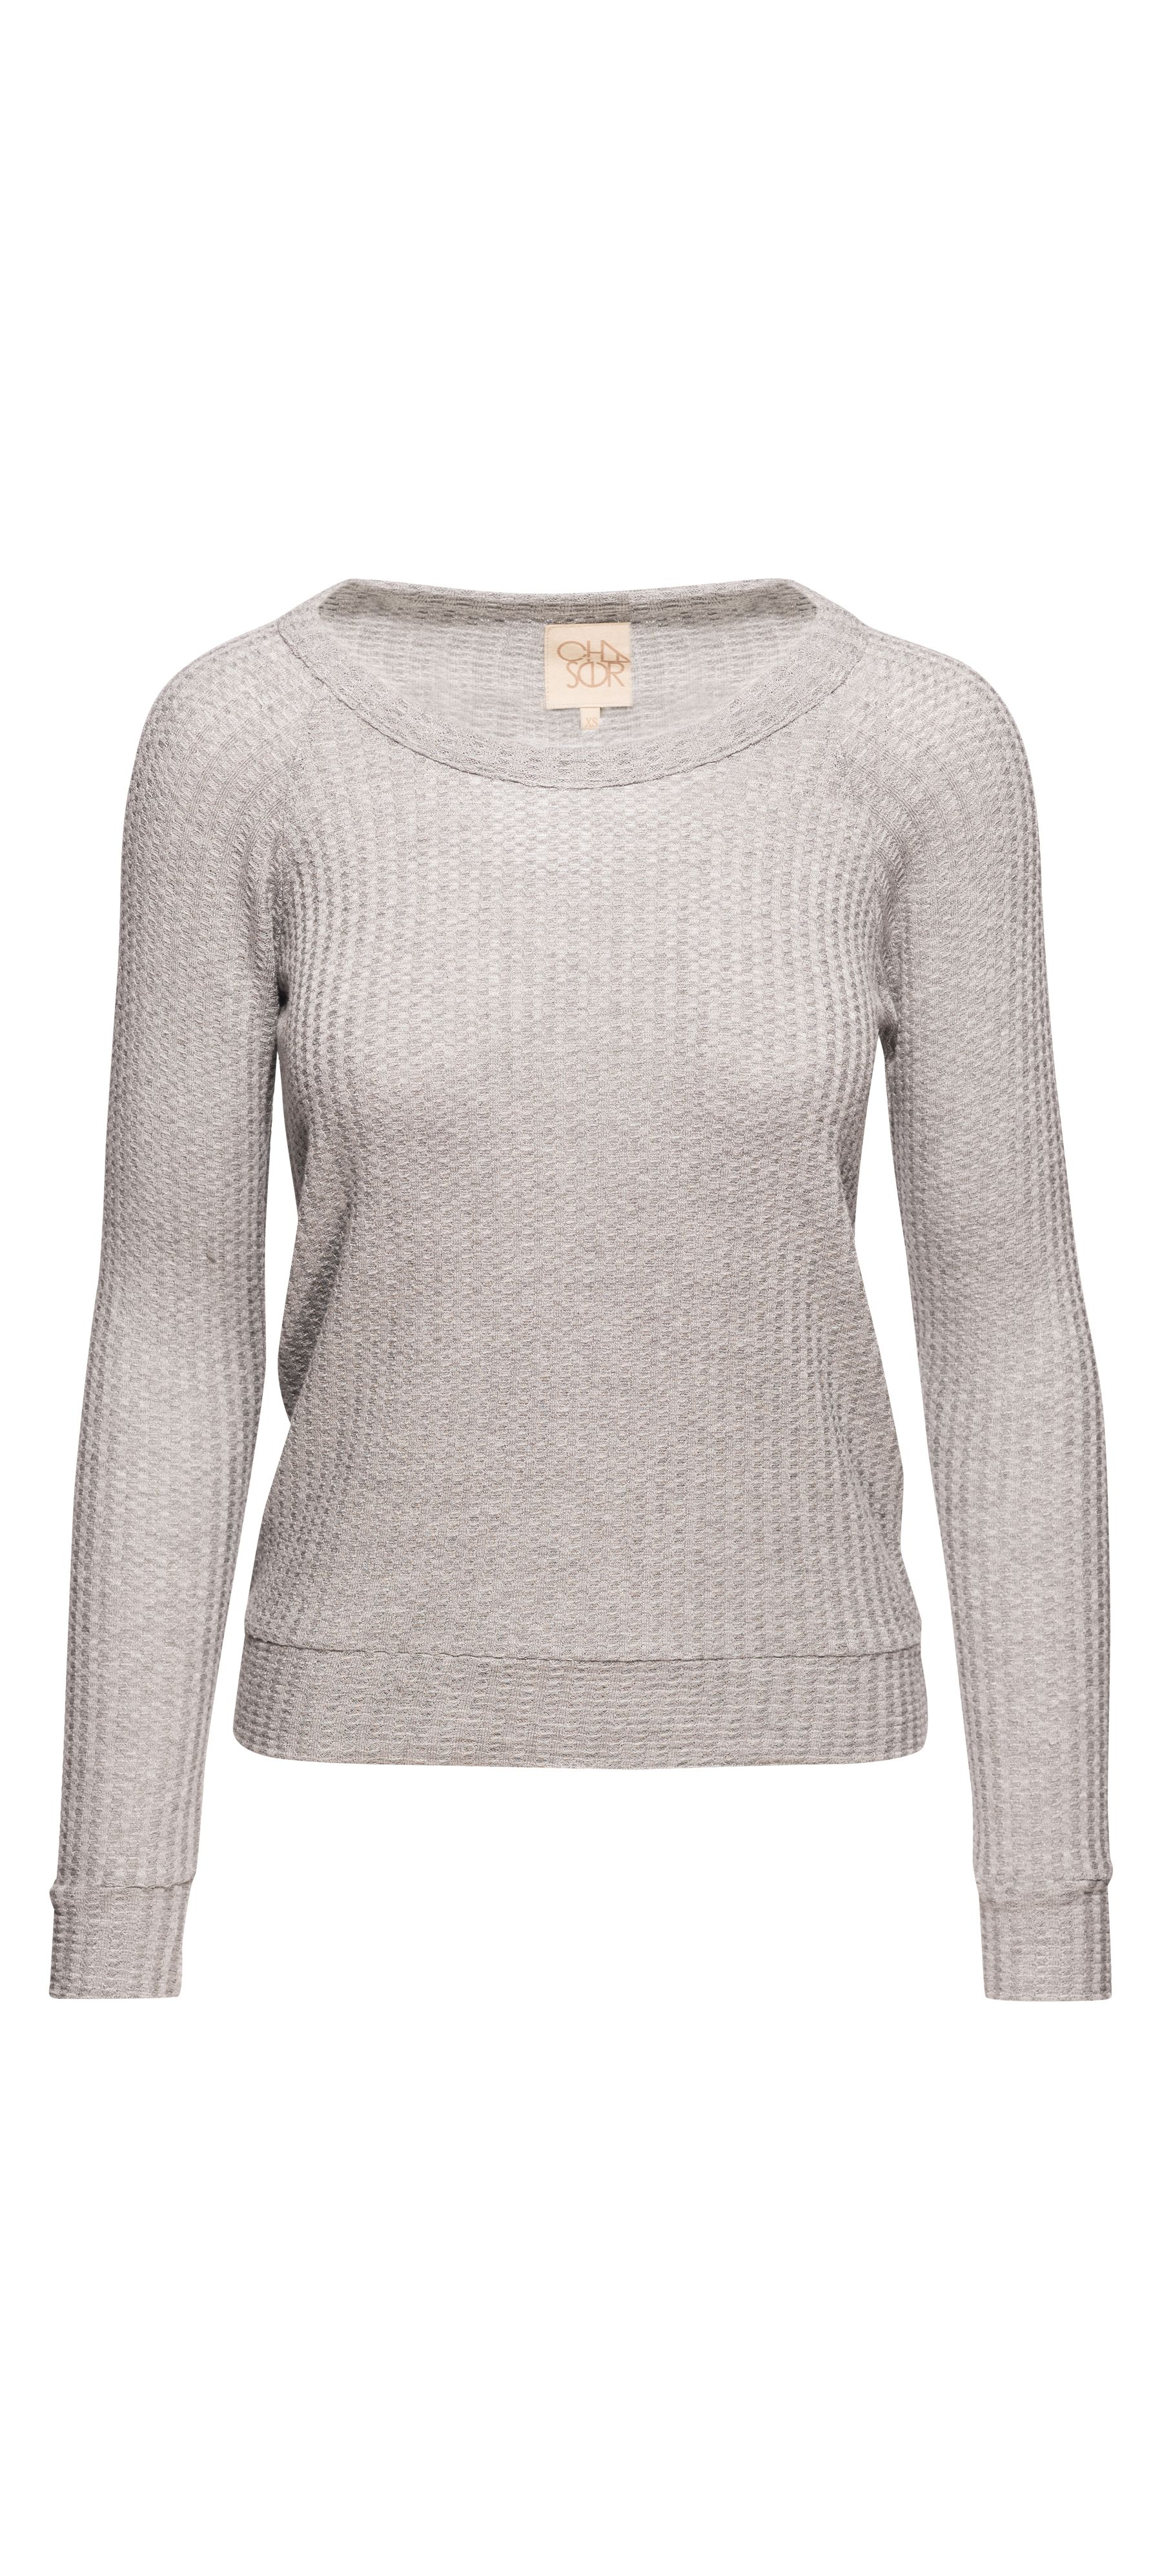 Chaser Long Sleeve Drape Back Raglan Thermal Pullover in Heather Grey / Manage Products / Catalog / Magento Admin